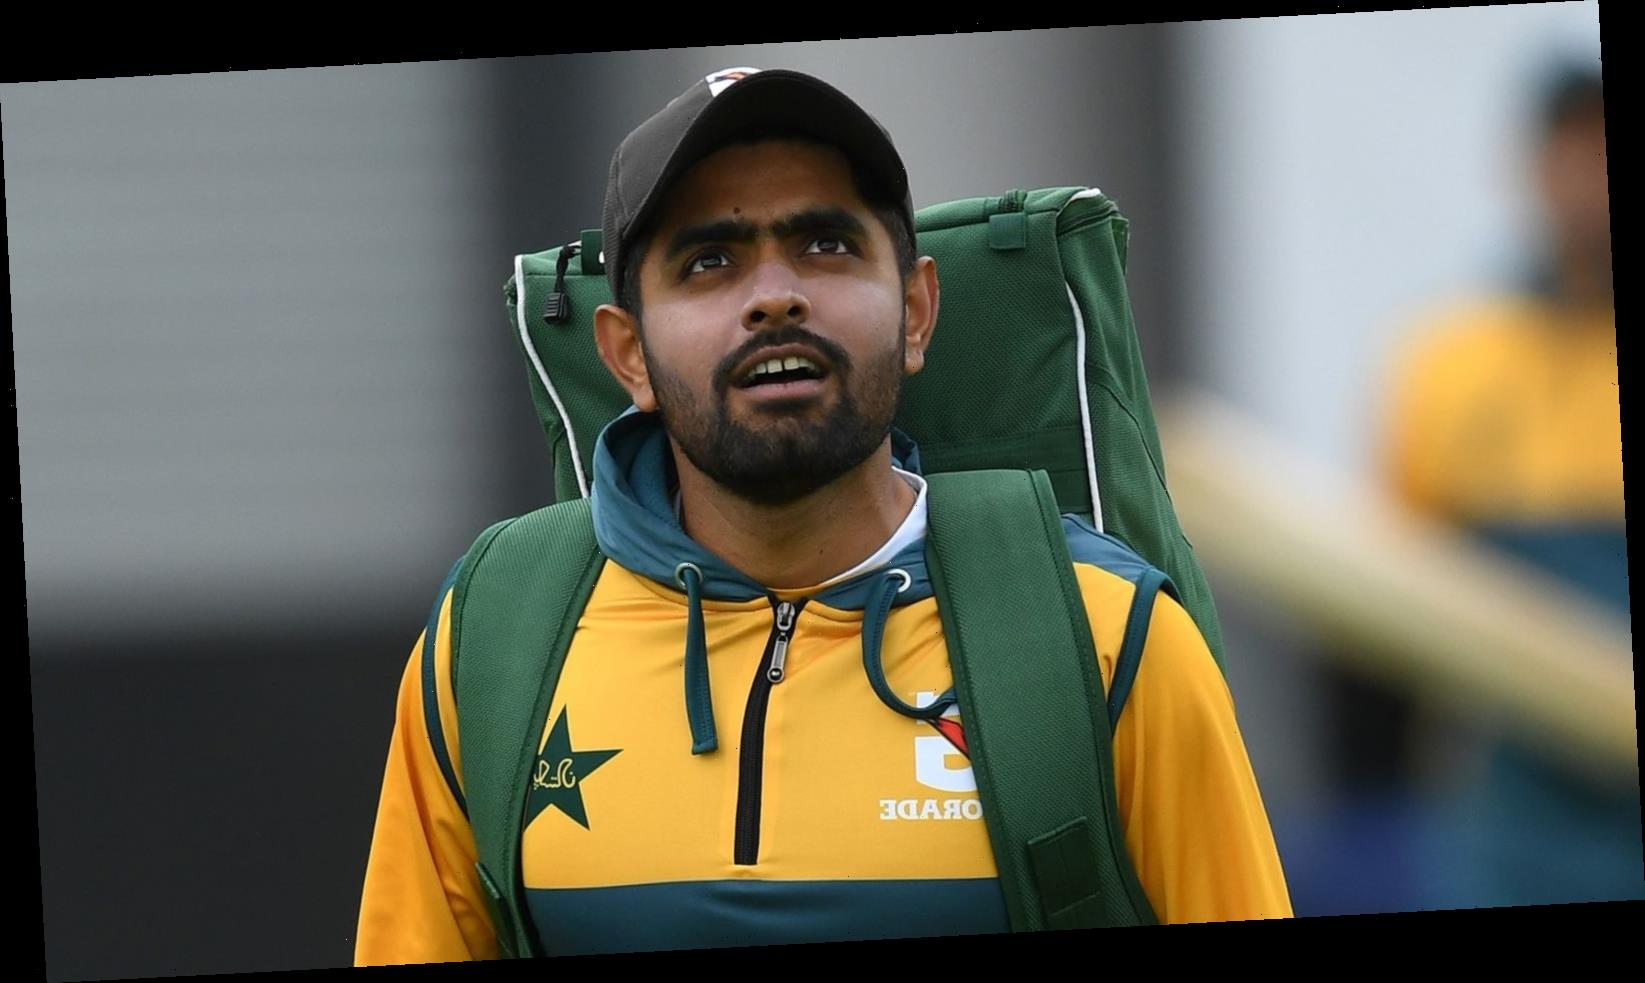 Pakistan captain Babar Azam out of first Test against New Zealand due to thumb injury